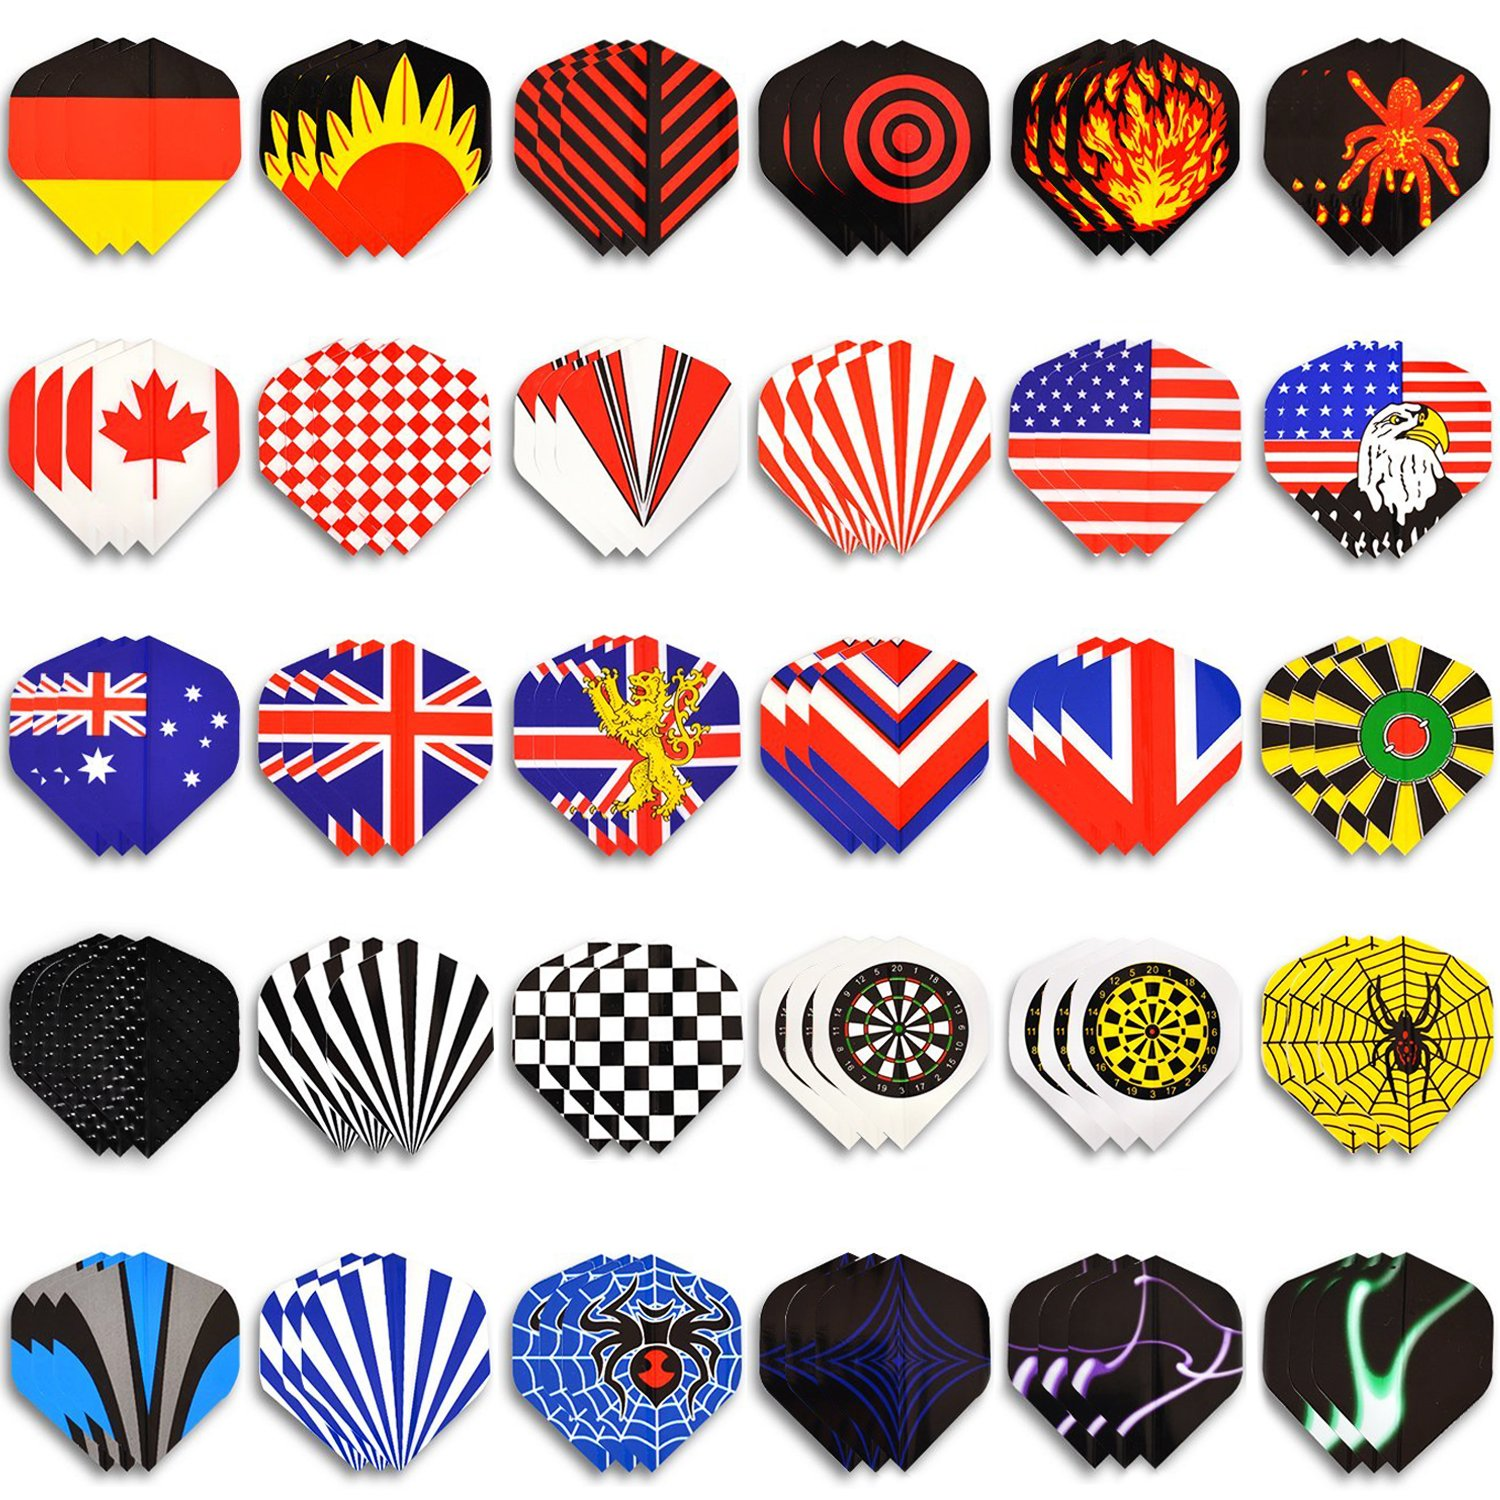 WINMAX Dart Flights 30 Sets (90 Pcs) Standard Shape National Flag Durable PET Flights for Steel Tip Darts, Perfect Accessories Equipment Supplies for Dart Games